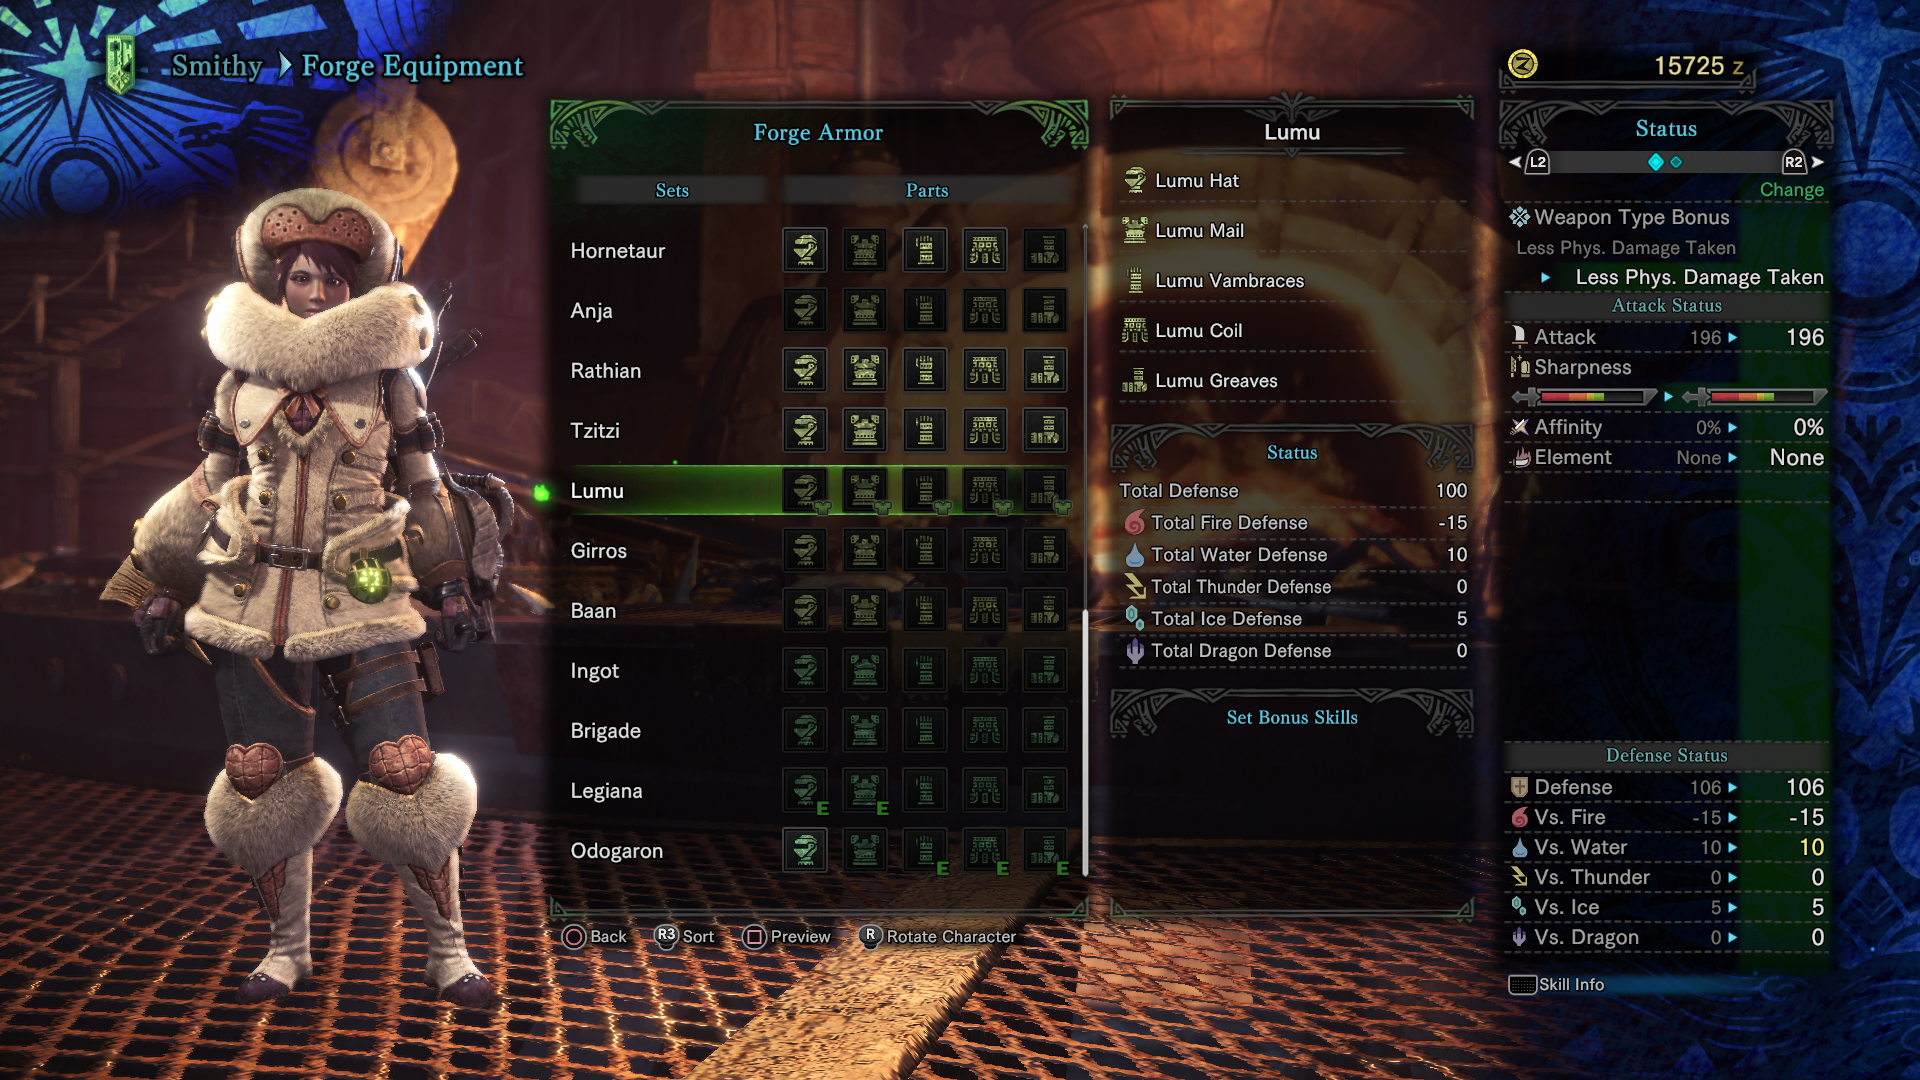 Monster Hunter World Armor Best Mhw Armor How To Forge Armor How